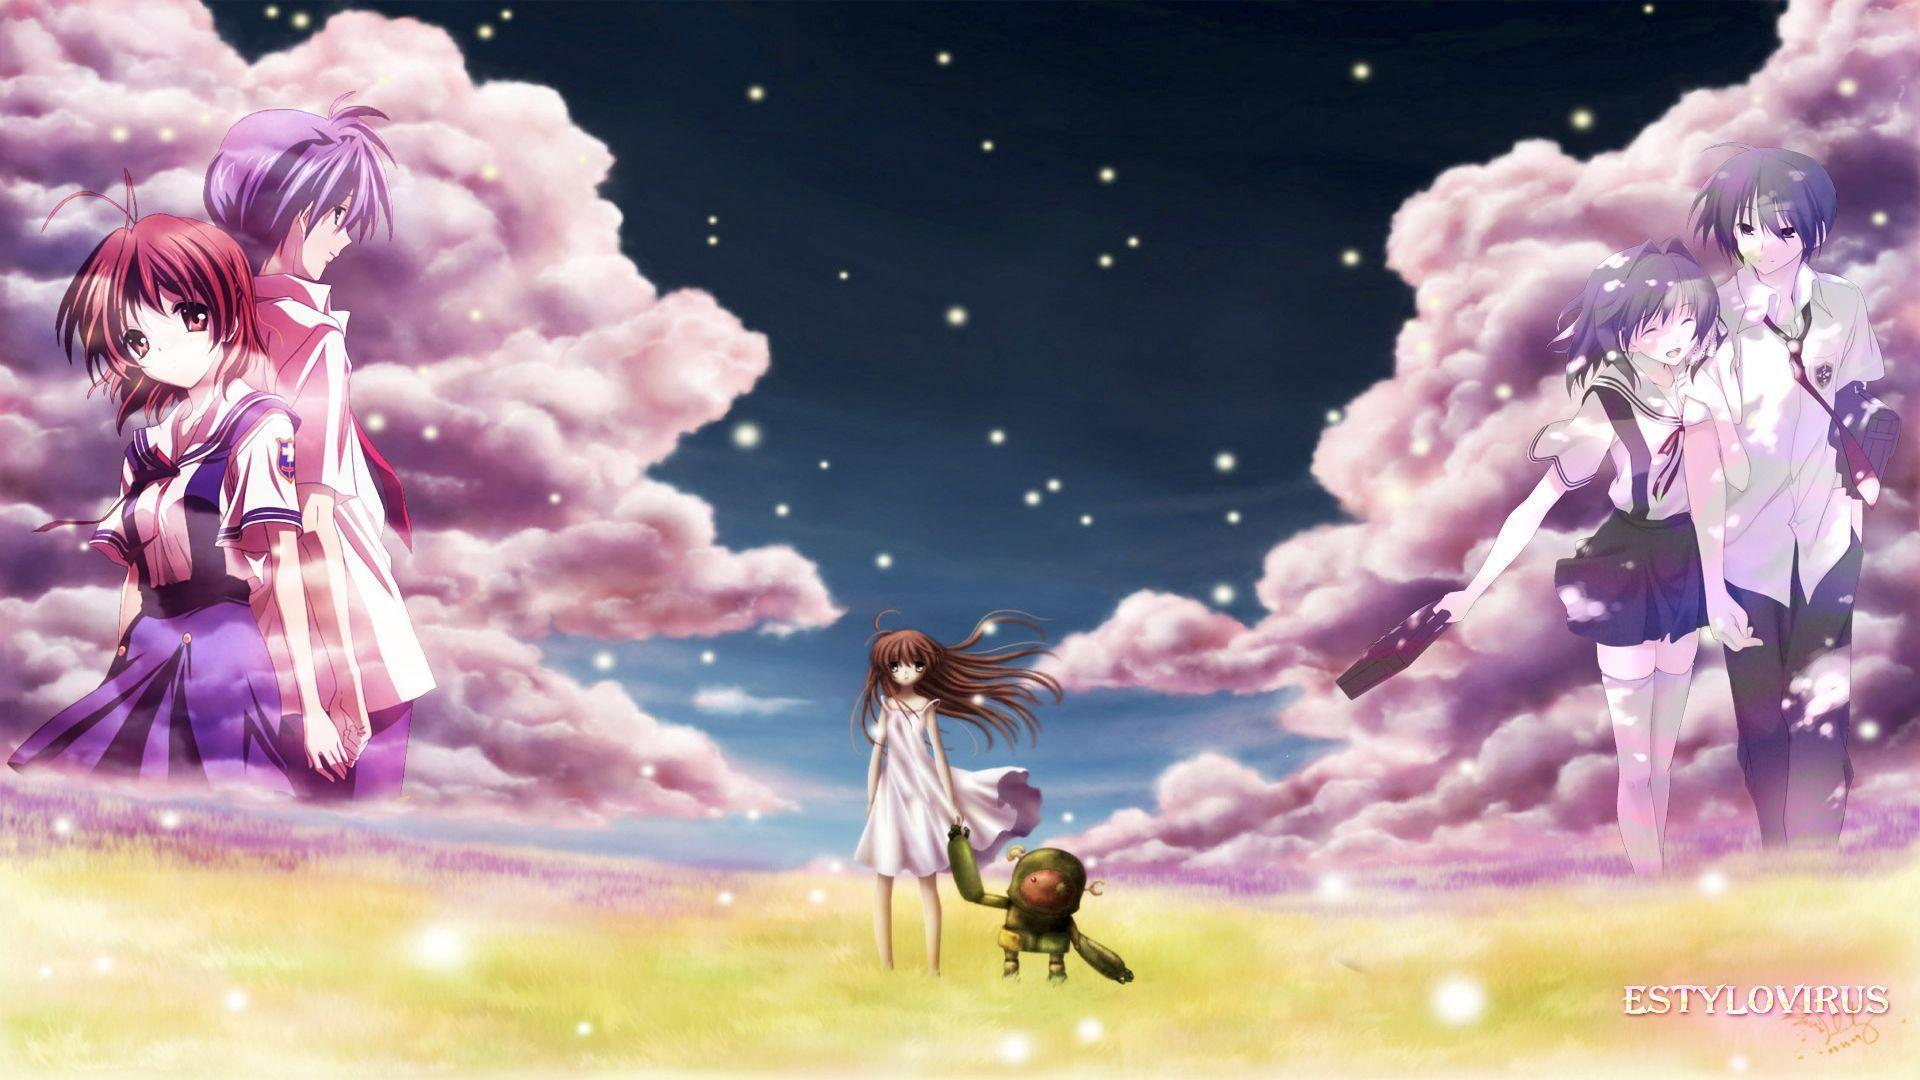 Clannad Wallpapers - Wallpaper Cave